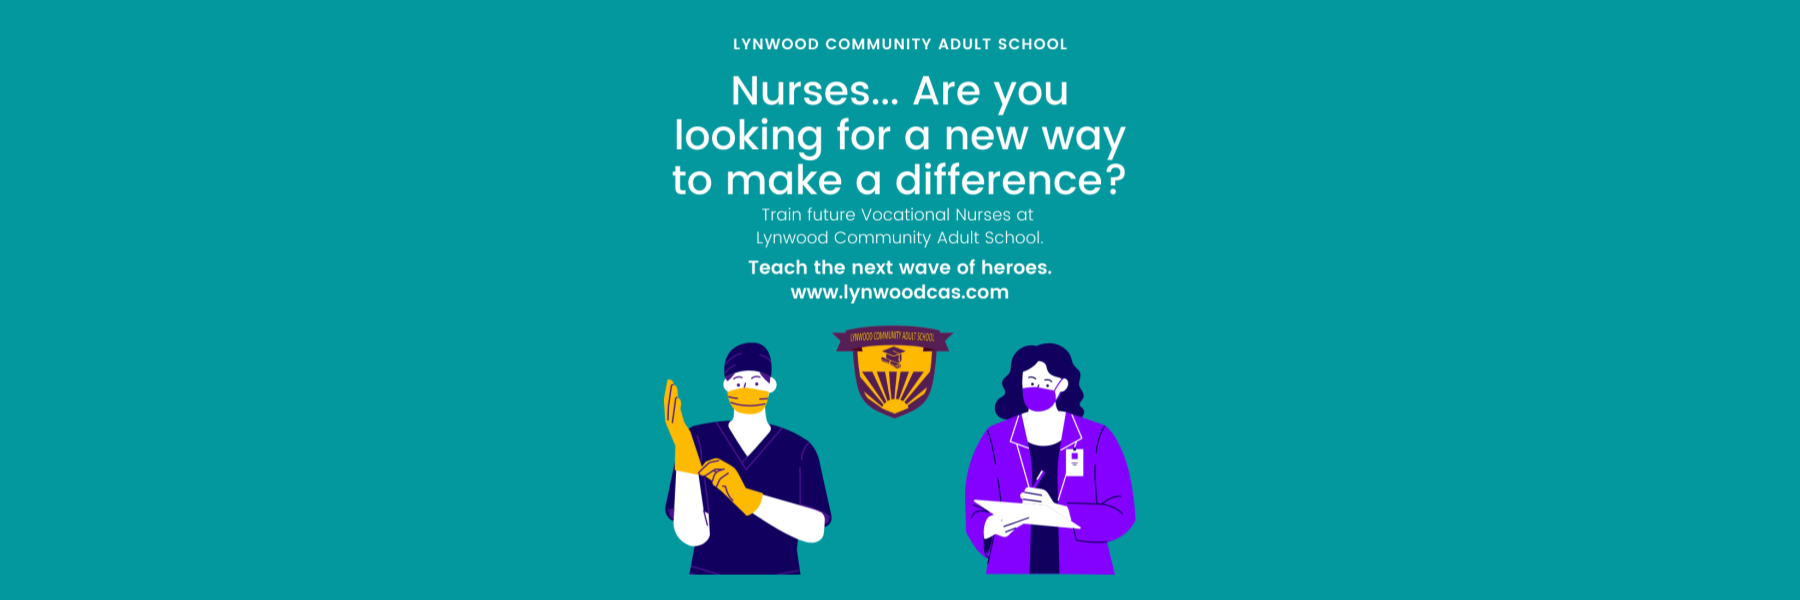 Nurses... Are you looking for a new way to make a difference? Train future Vocational Nurses at  Lynwood Community Adult School. Teach the next wave of heroes.